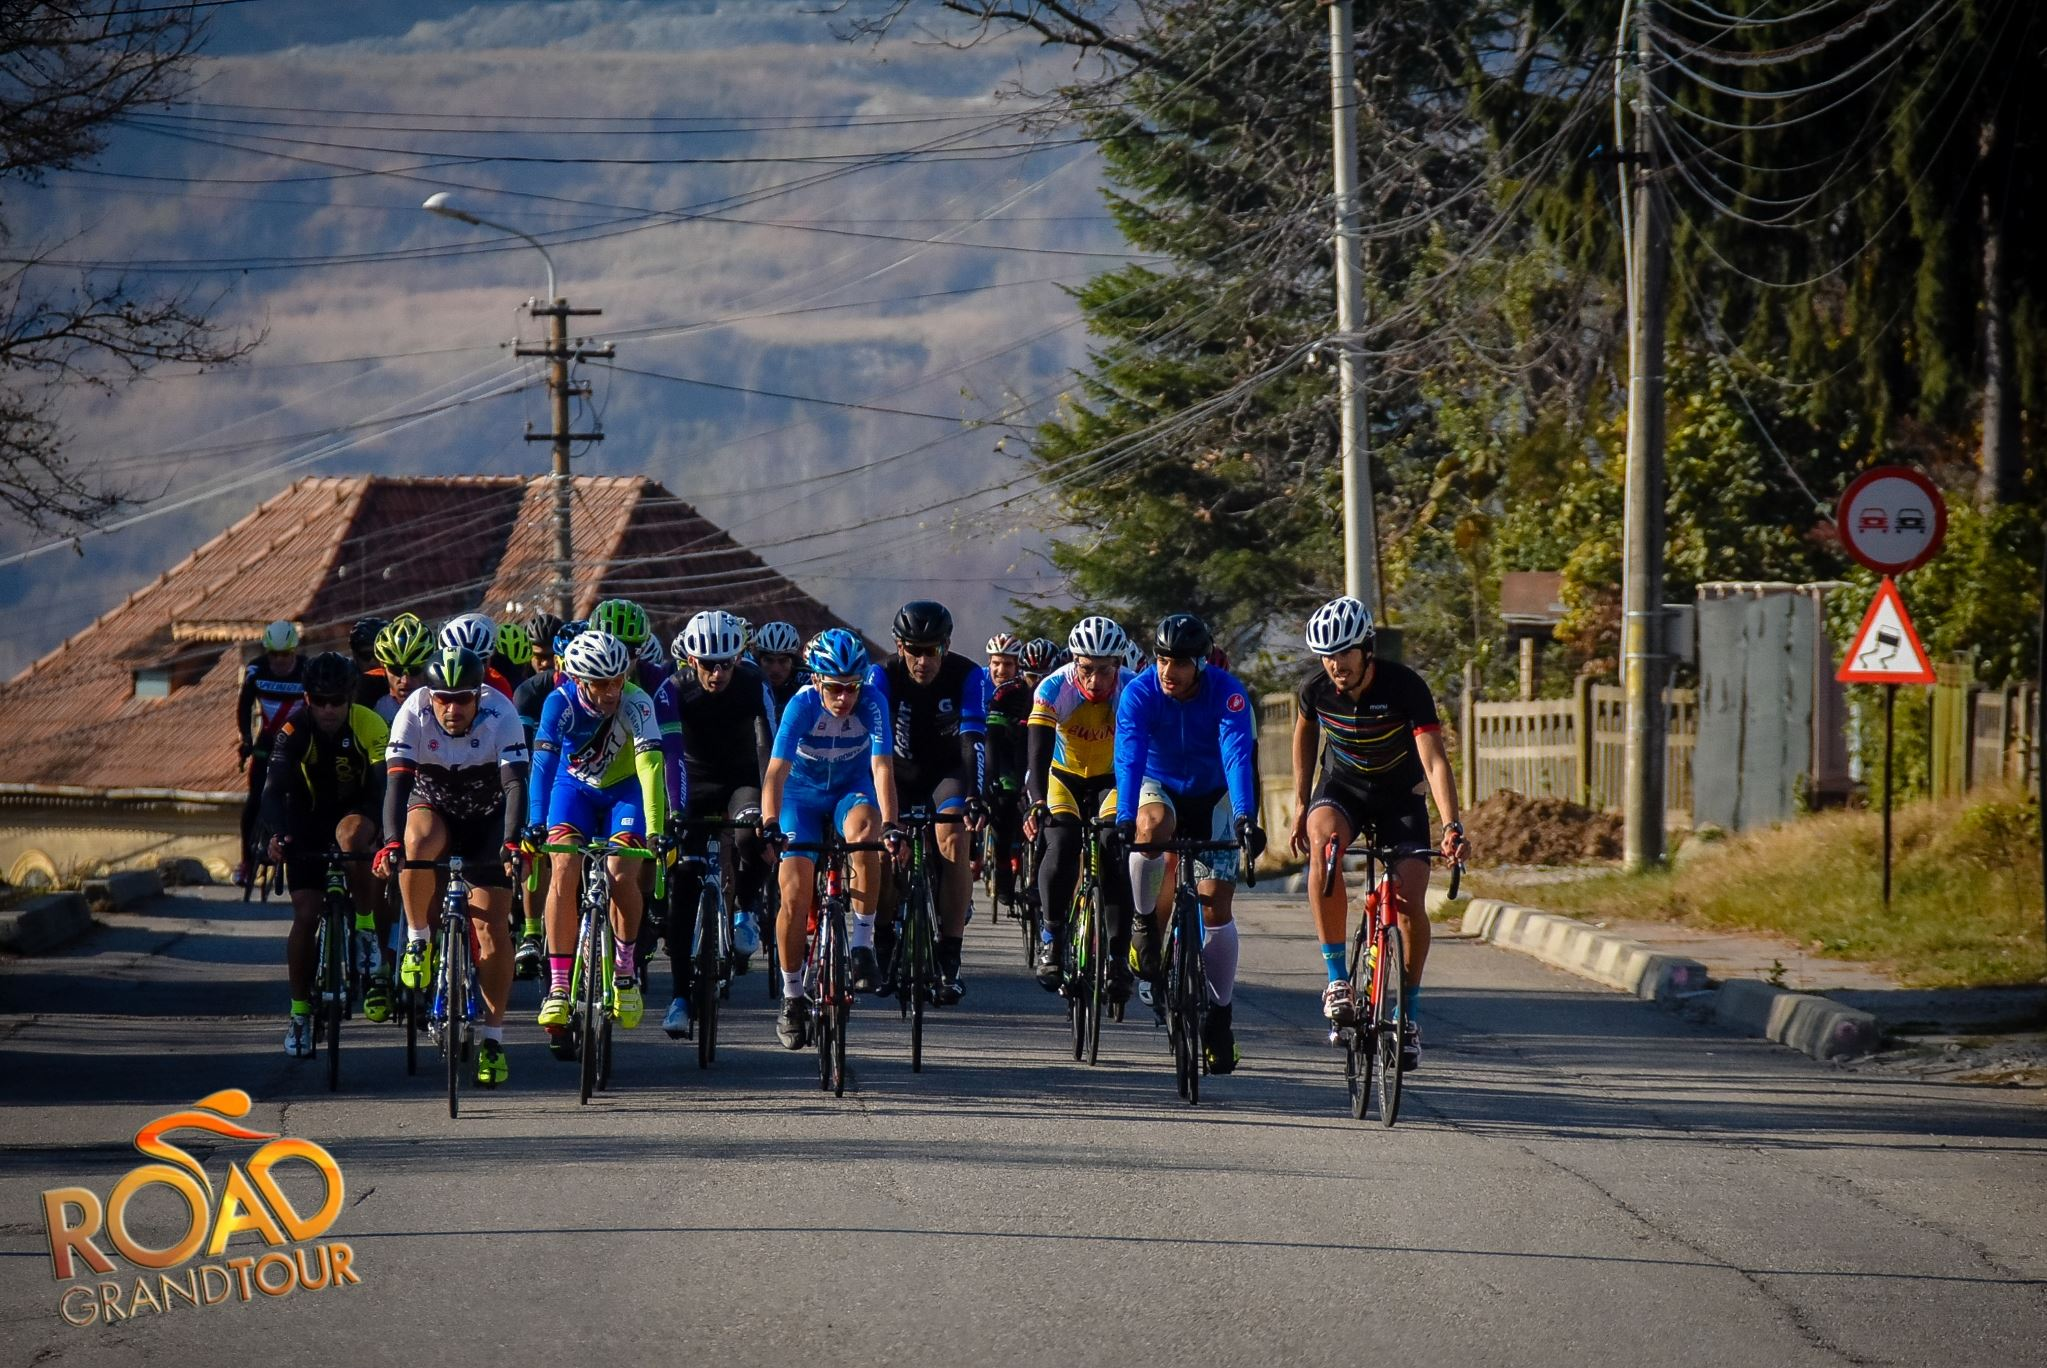 The Wall - Sultanul - Road Grand Tour - concurs 2018